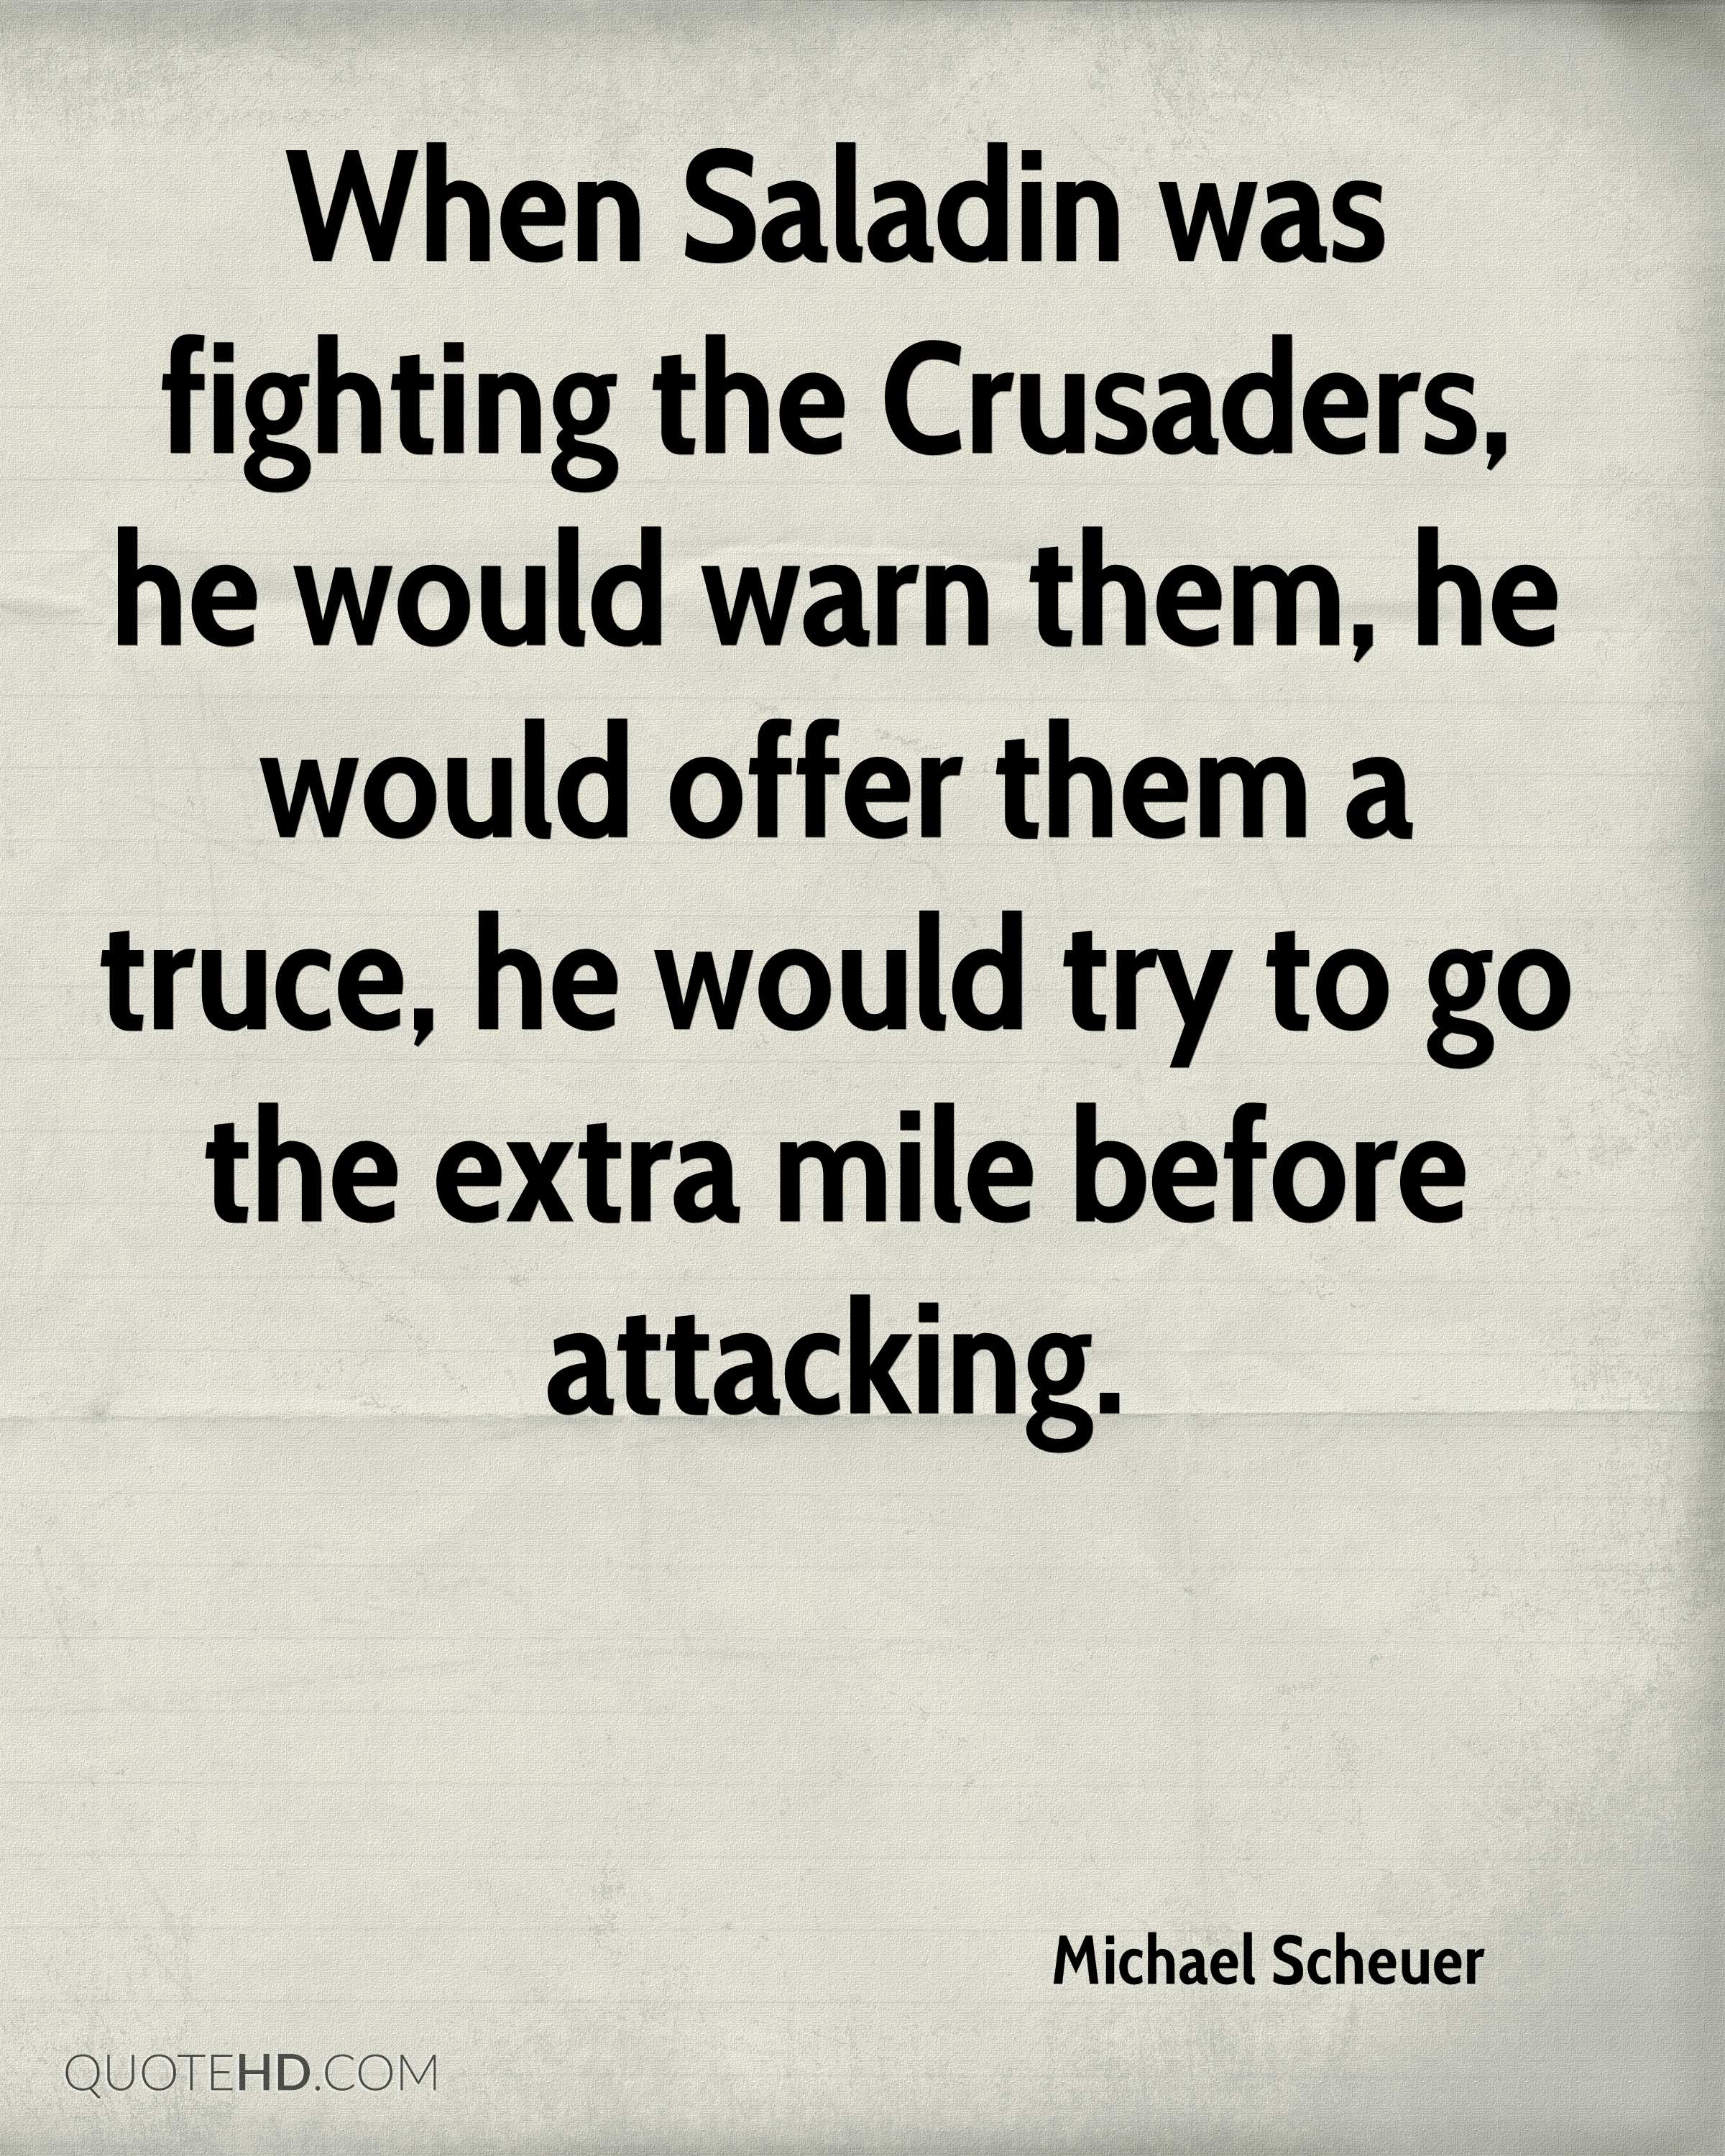 When Saladin was fighting the Crusaders, he would warn them, he would offer them a truce, he would try to go the extra mile before attacking.